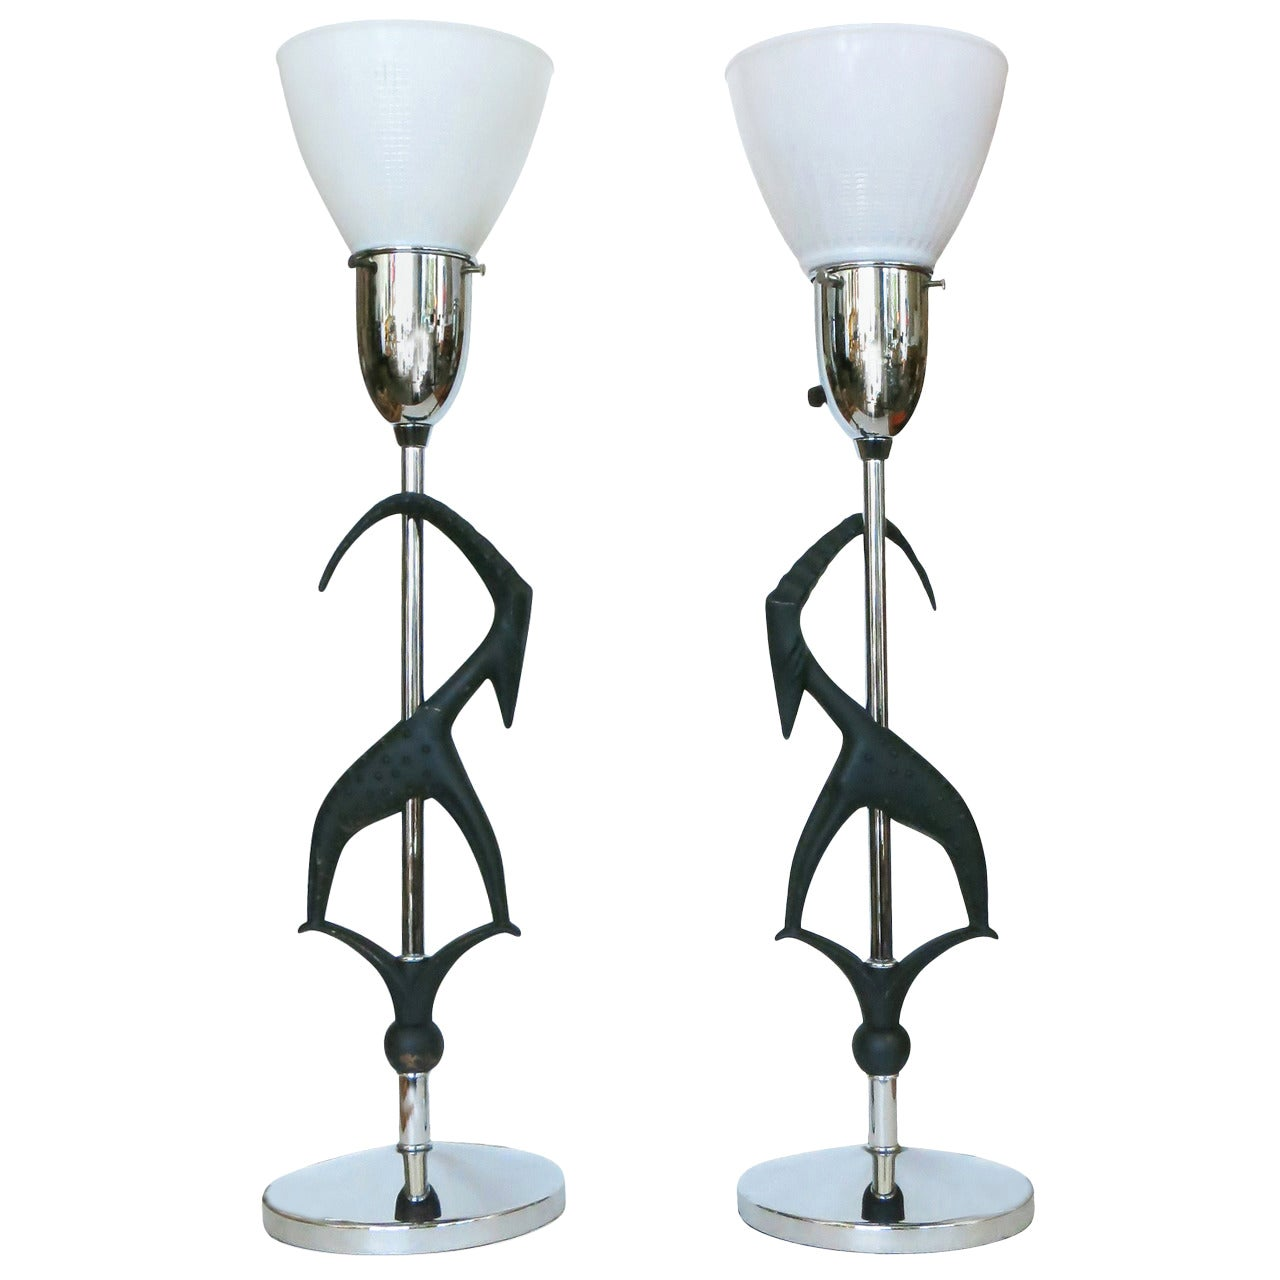 Midcentury Gazelle Table Lamps, Pair by Rembrandt